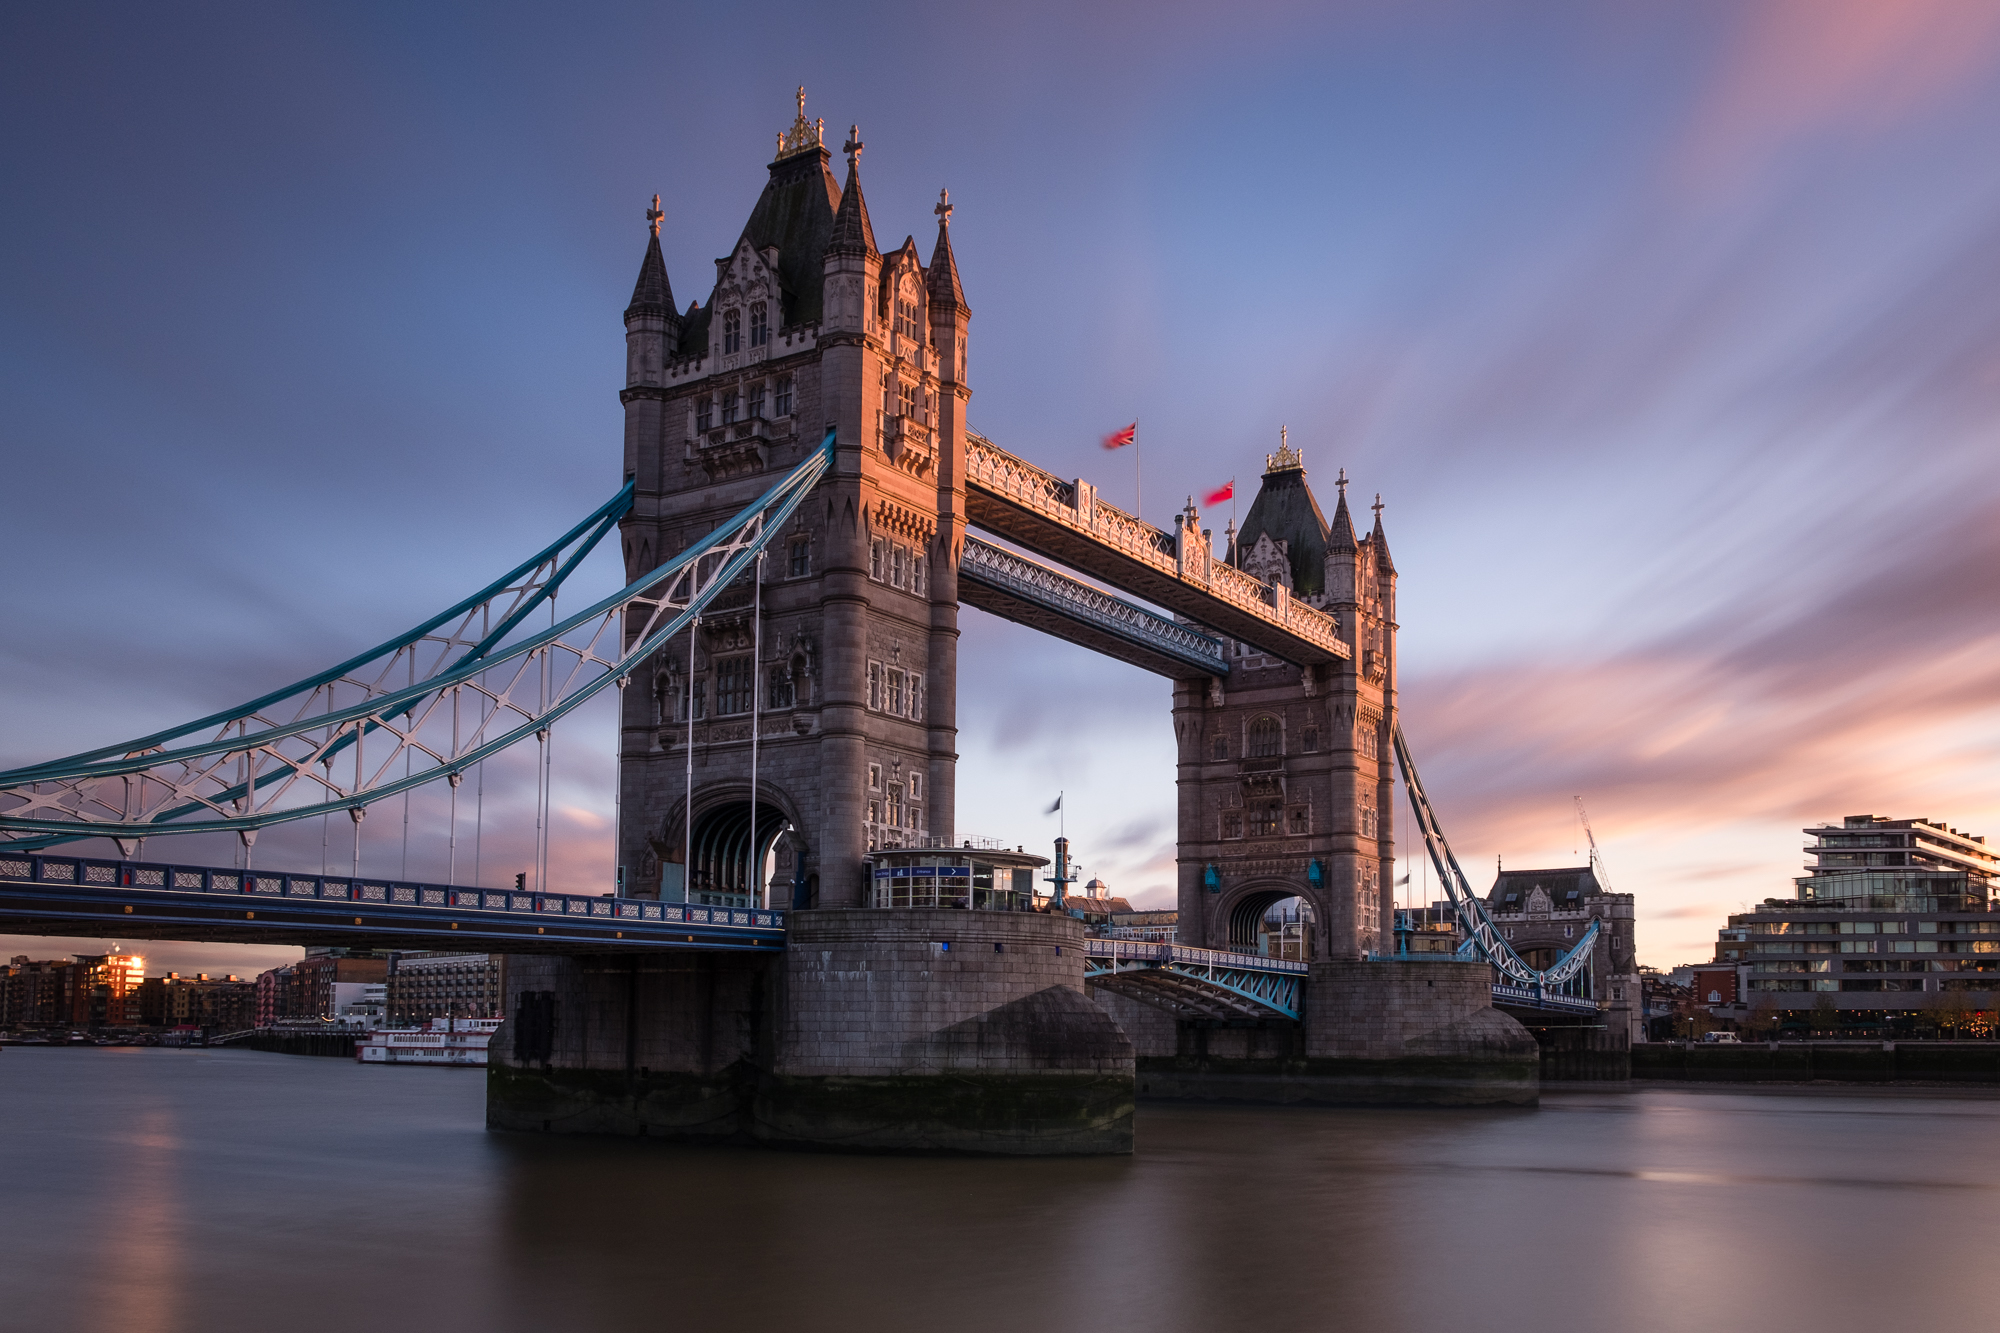 A long exposure photo of Tower Bridge at sunset taken by Trevor Sherwin